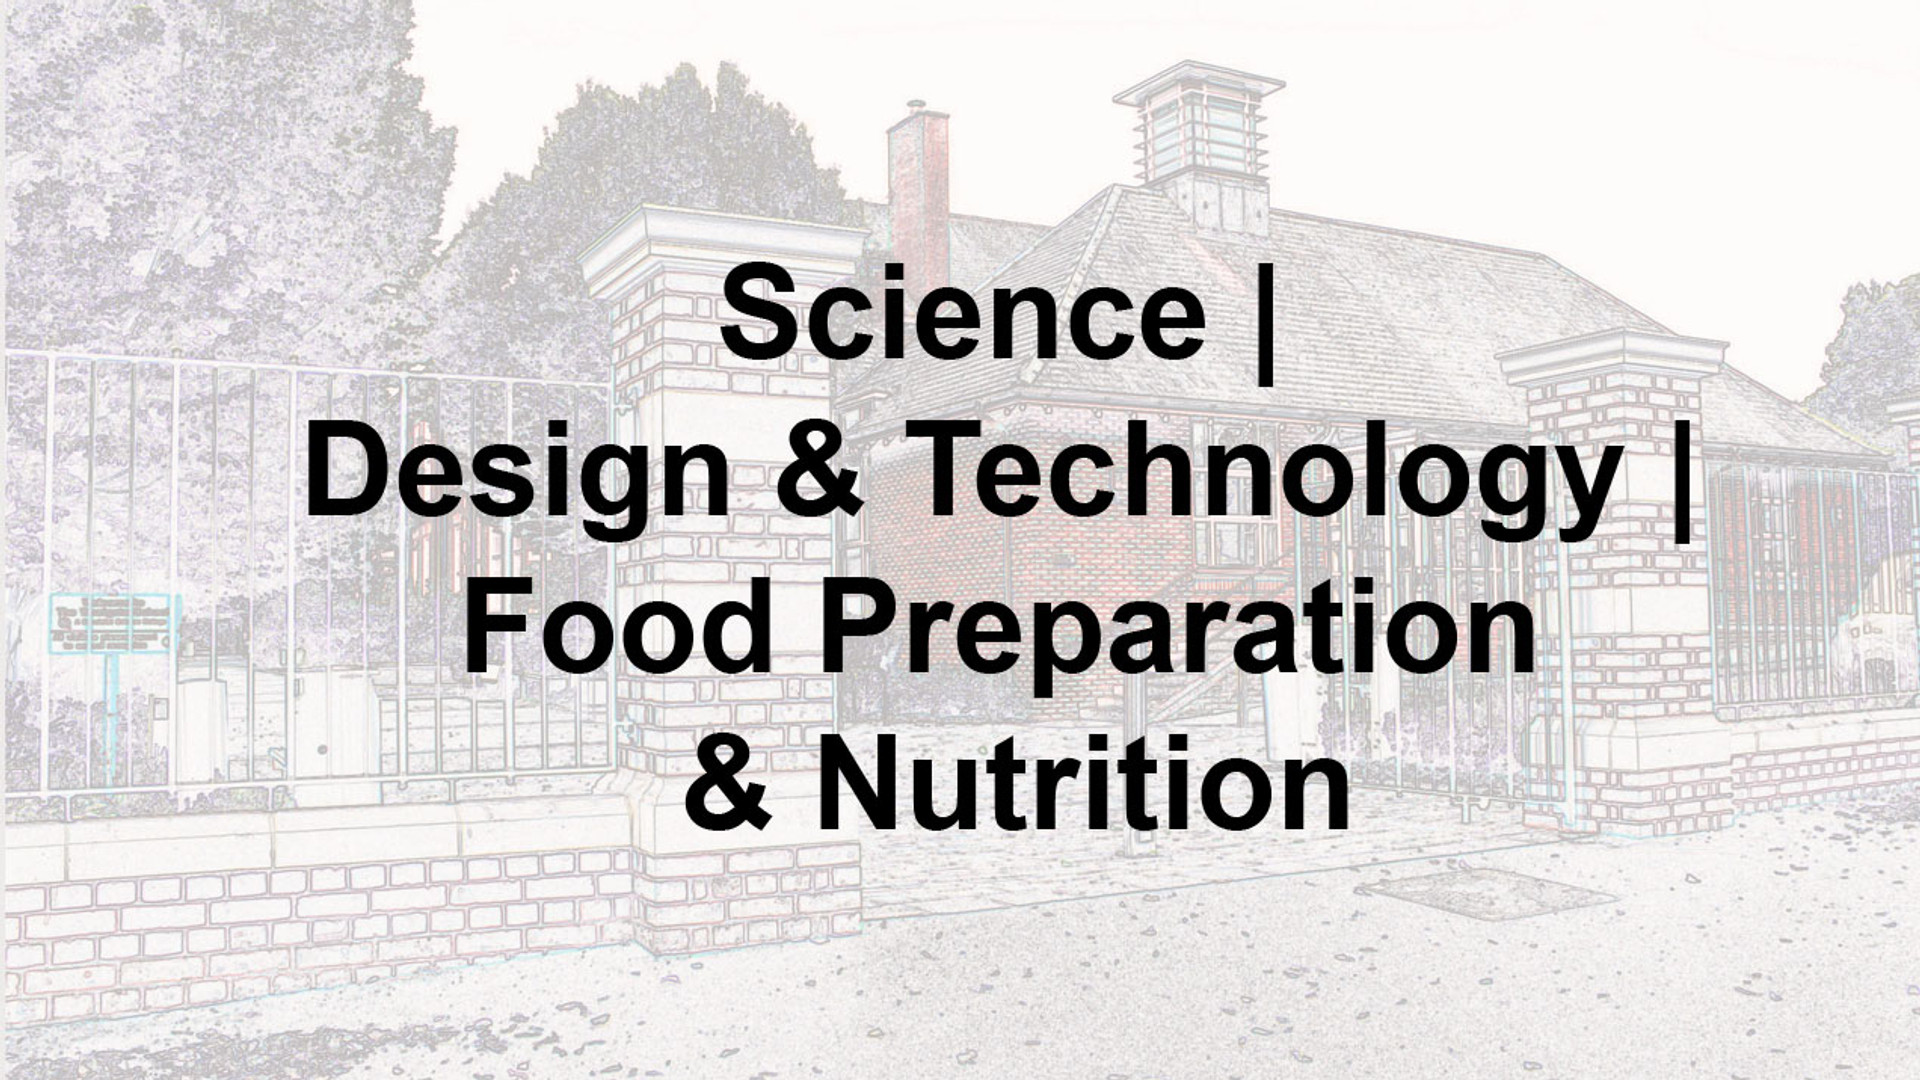 Science, Design & Technology & Food Preparation & Nutrition